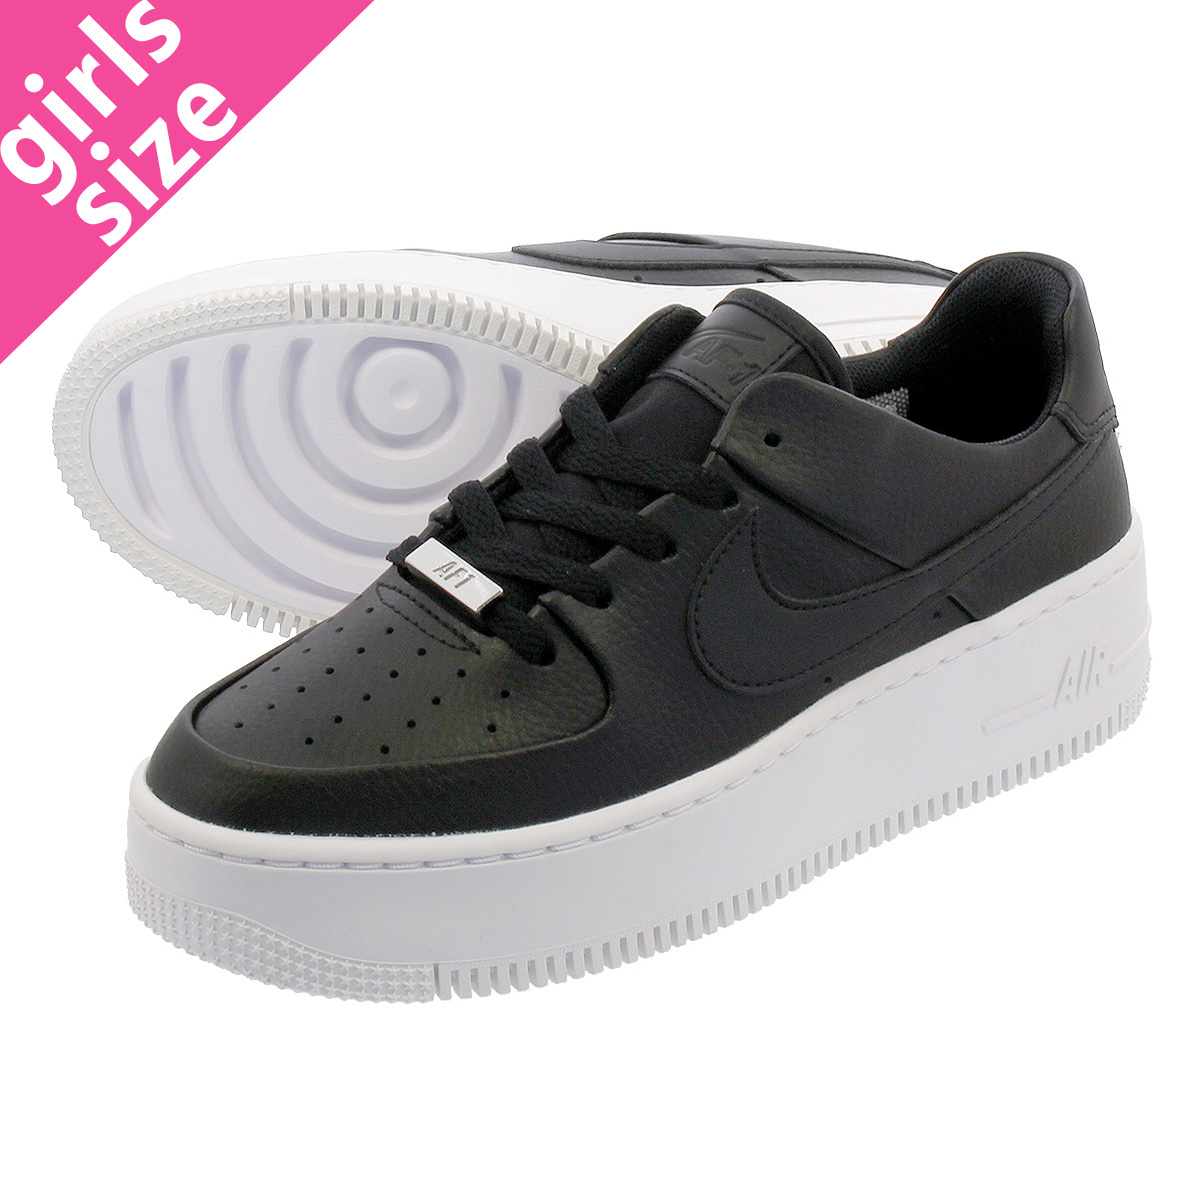 7f5115fbd15 NIKE WMNS AIR FORCE 1 SAGE LOW Nike women air force 1 sage low  BLACK/BLACK/WHITE ar5339-002